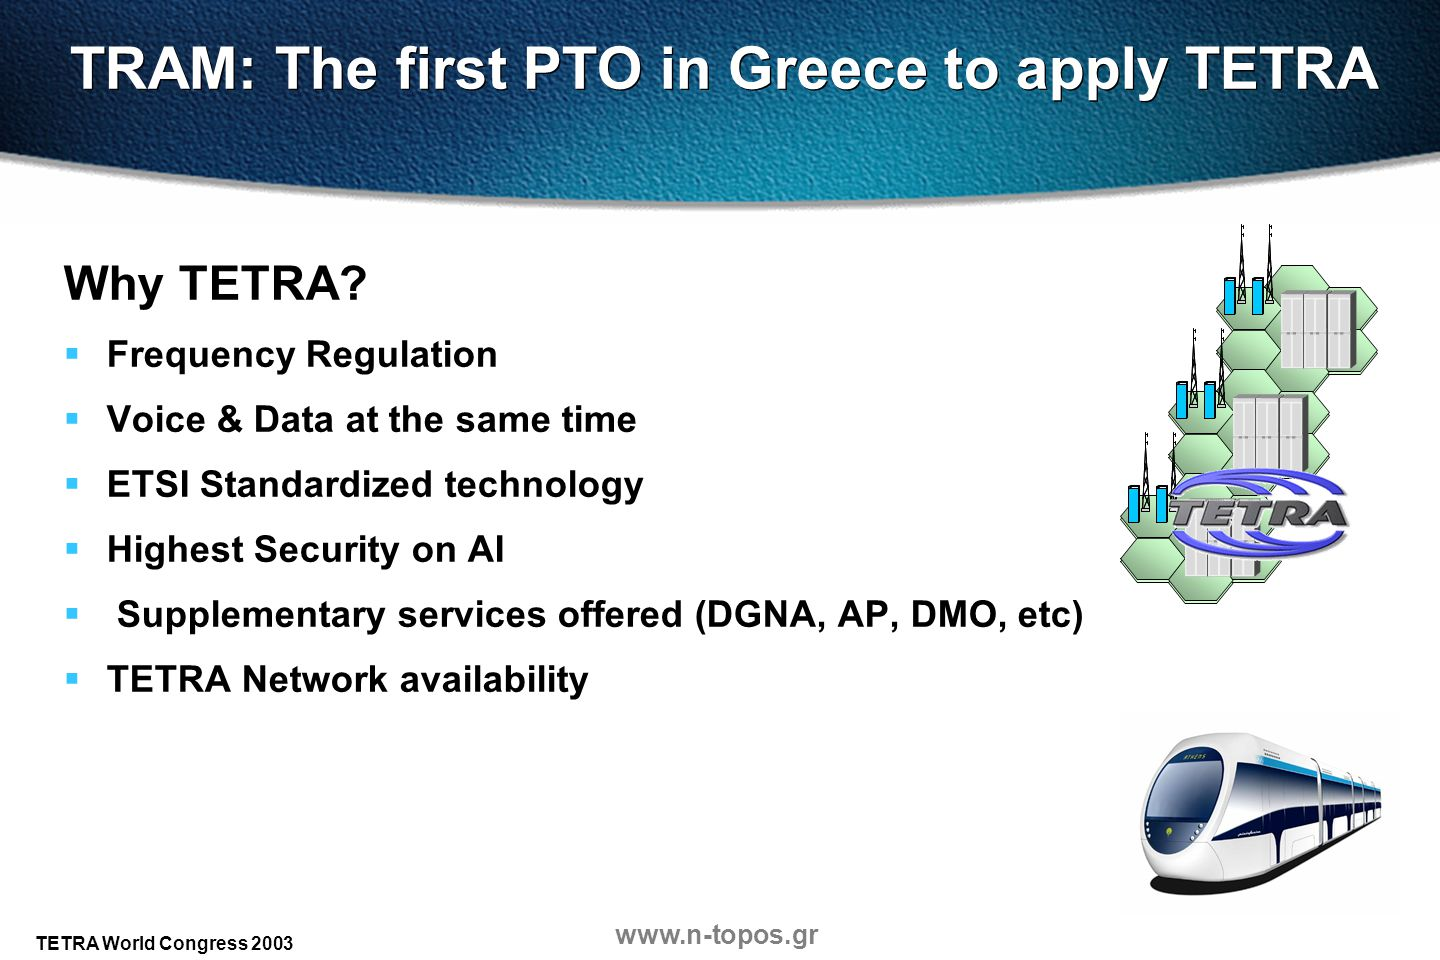 TRAM: The first PTO in Greece to apply TETRA